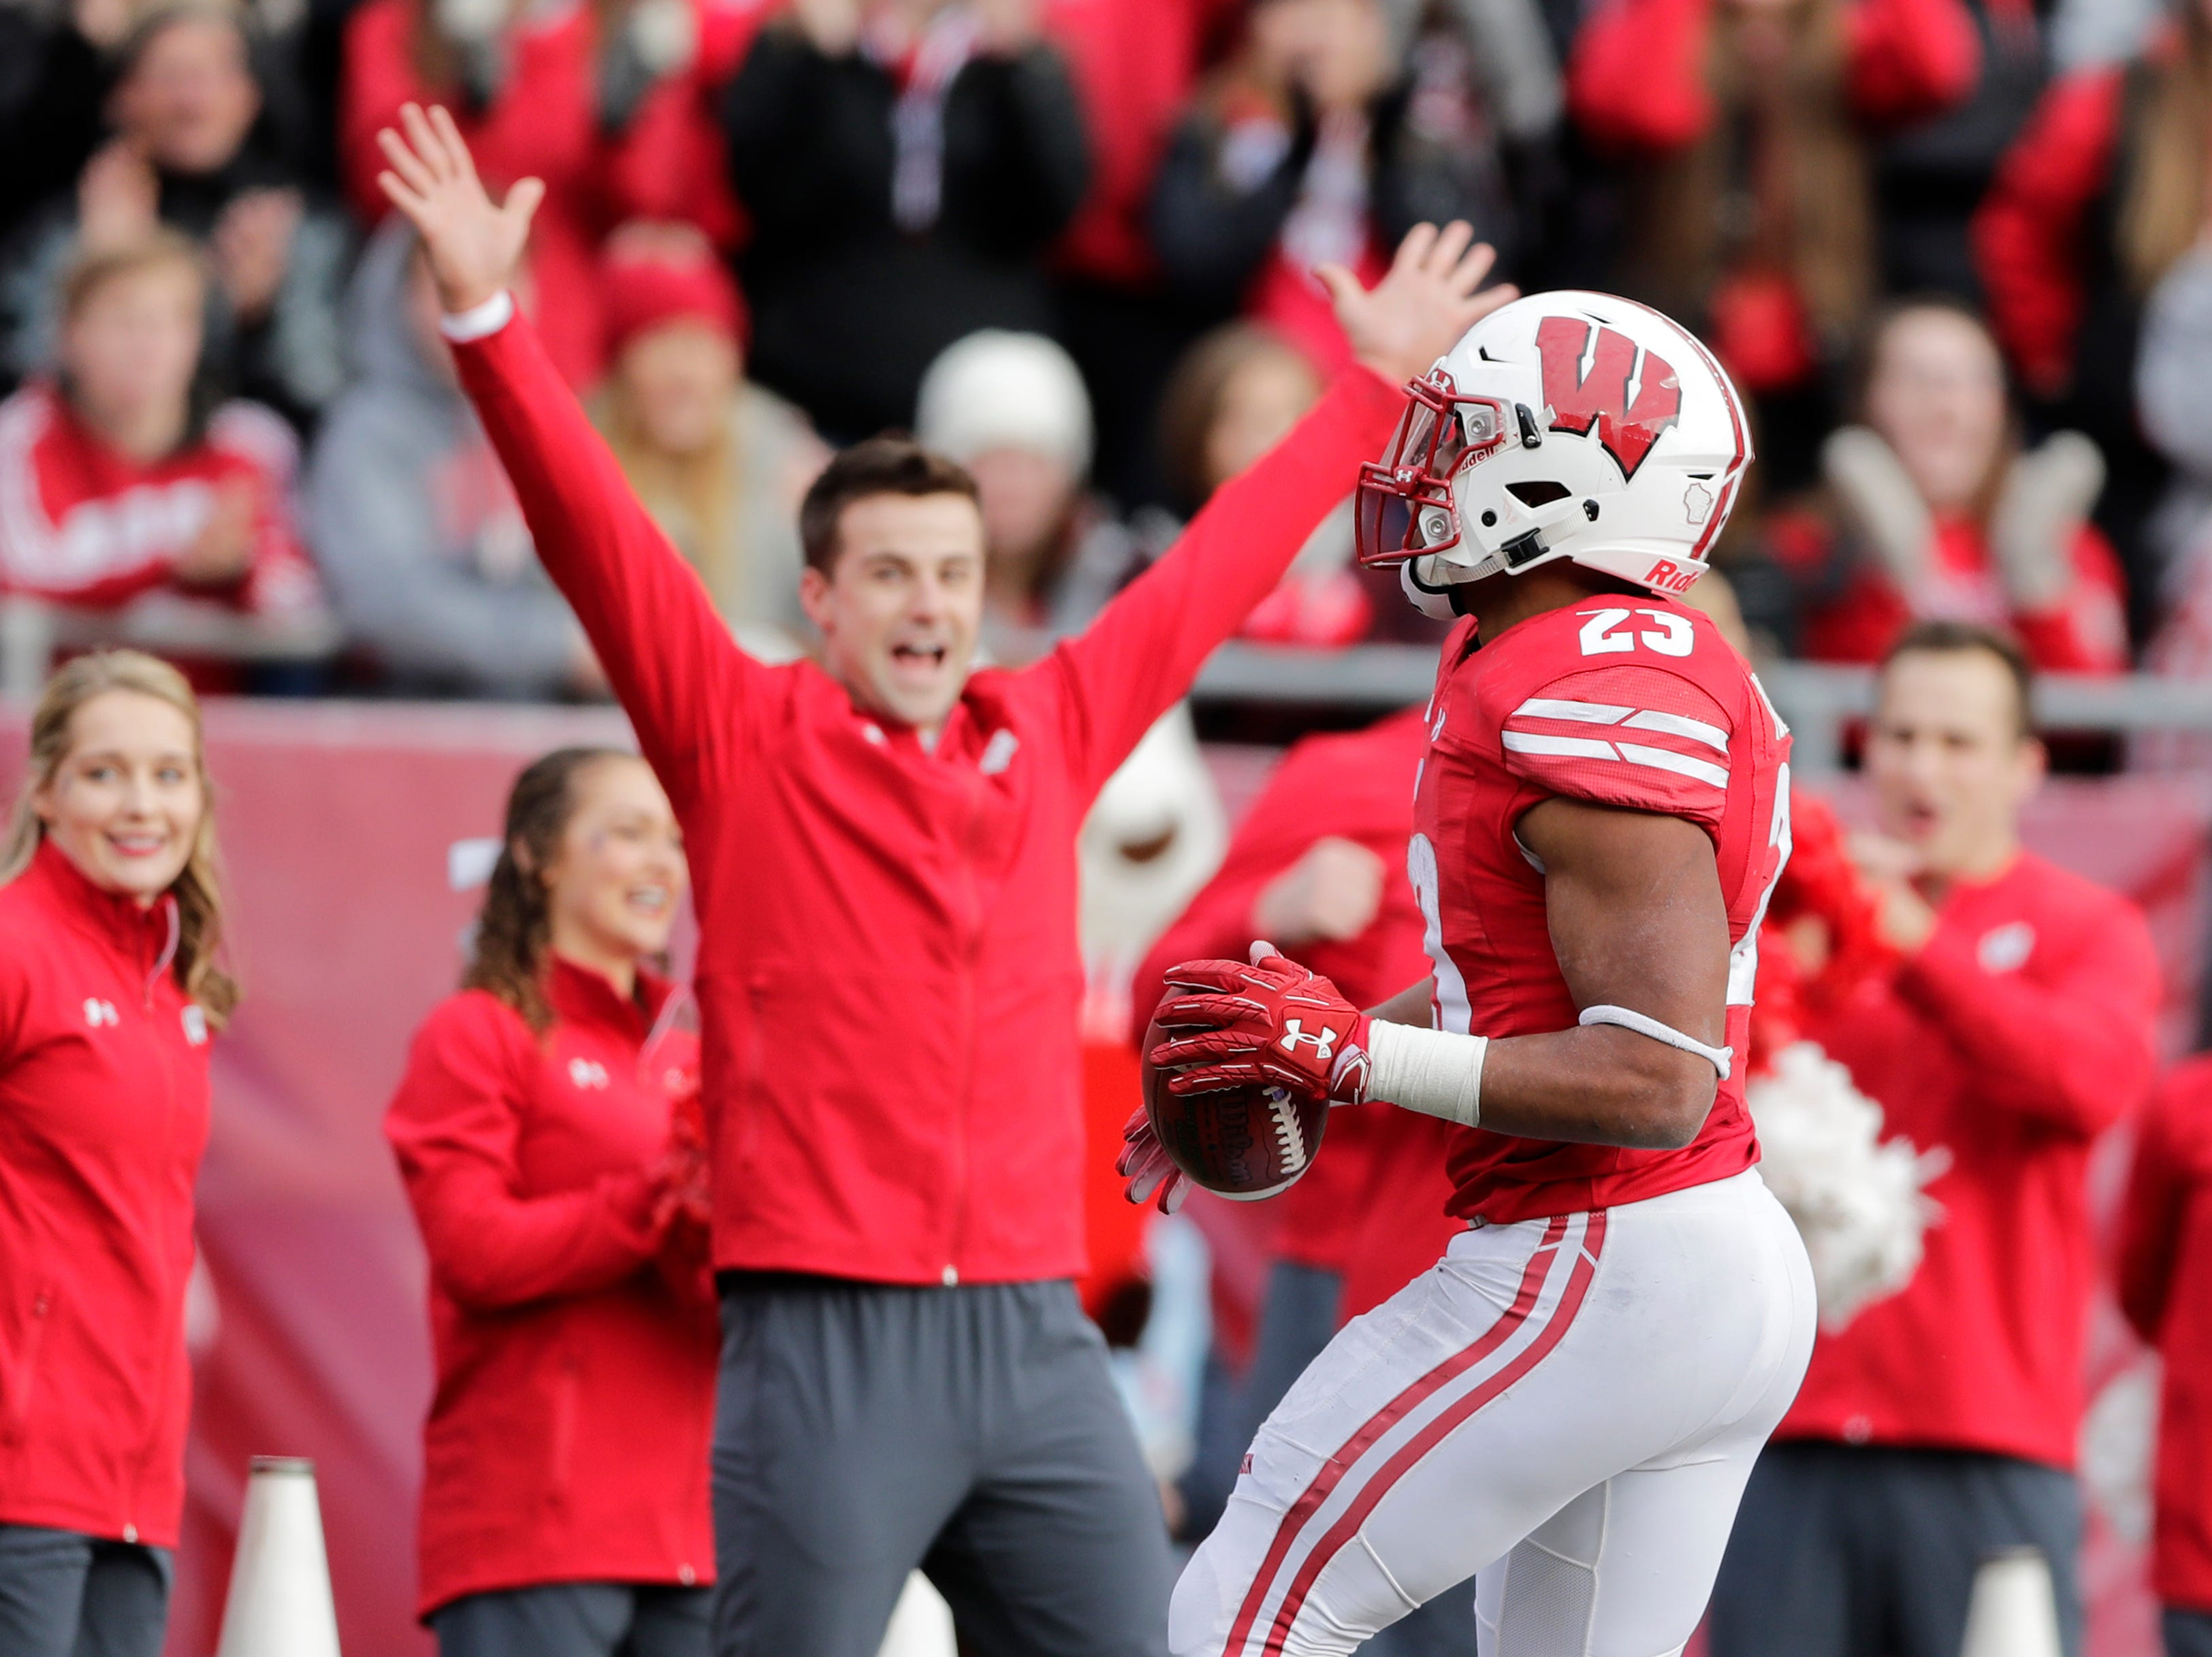 Wisconsin Badgers running back Jonathan Taylor (23) rushes for a touchdown against the Rutgers Scarlet Knights in the third quarter of a Big Ten football game at Camp Randall Stadium on Saturday, November 3, 2018 in Madison, Wis.Adam Wesley/USA TODAY NETWORK-Wisconsin